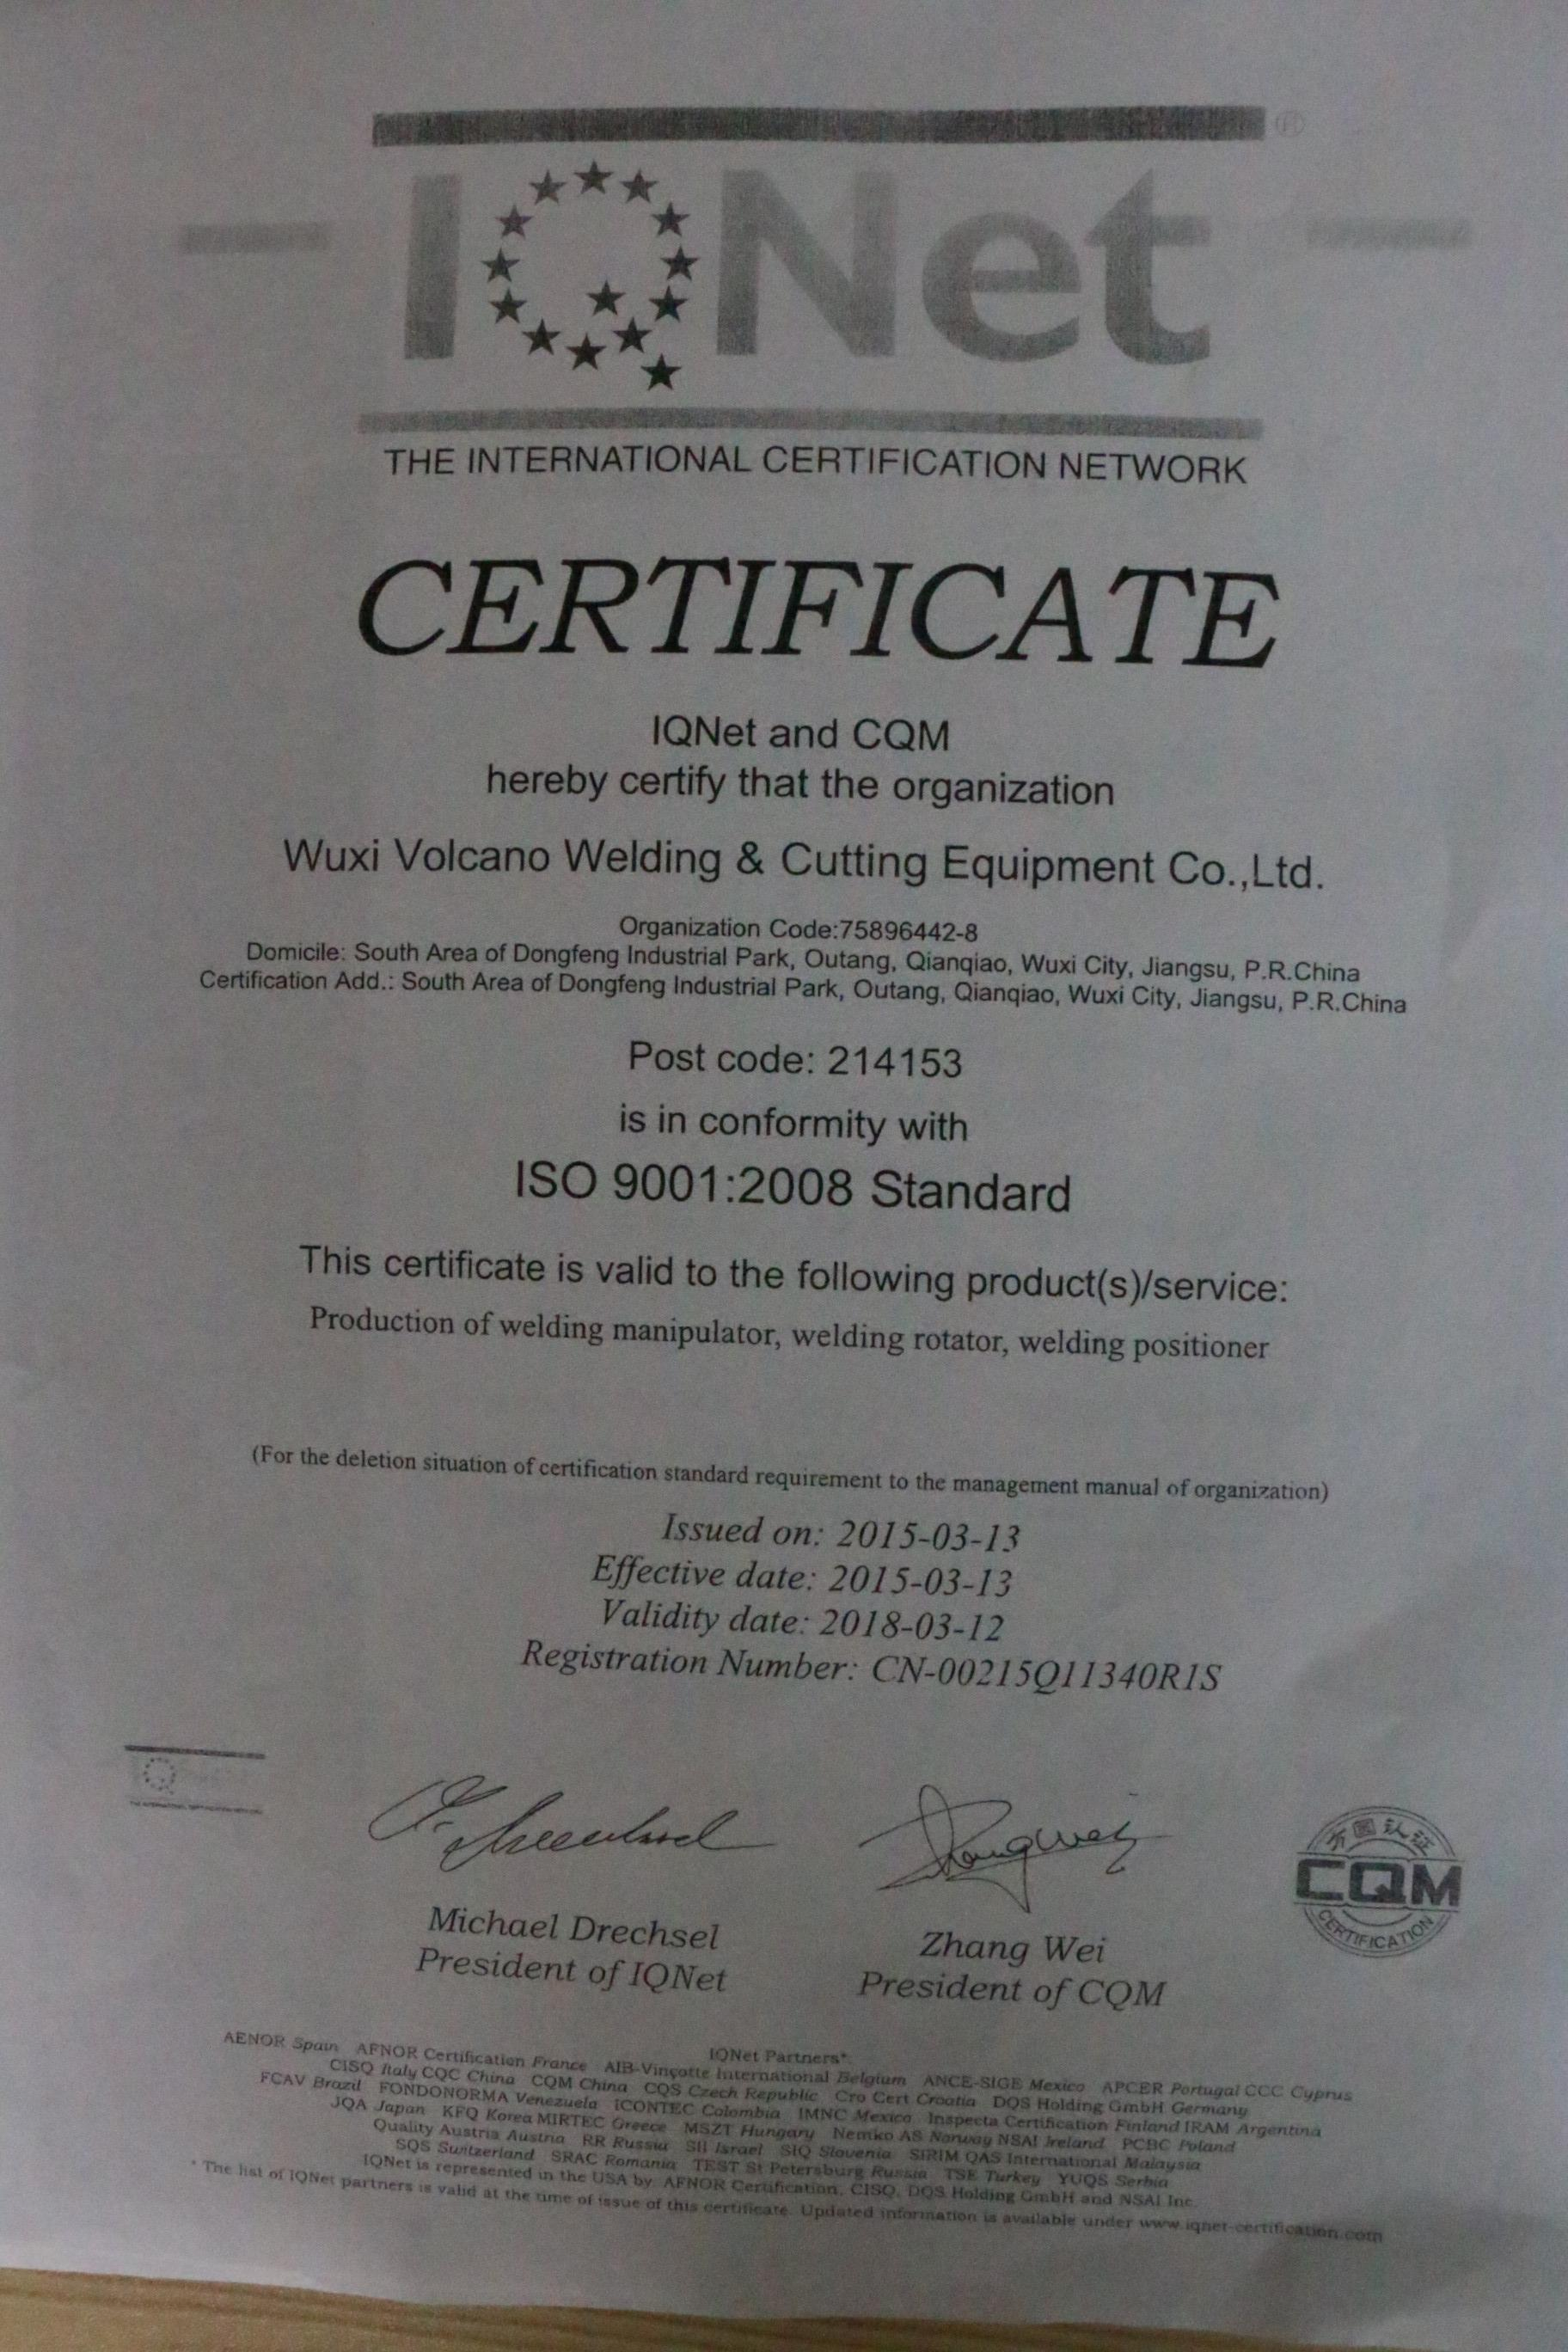 Certificate - Wuxi Volcano Welding & Cutting Equipment Co., Ltd.